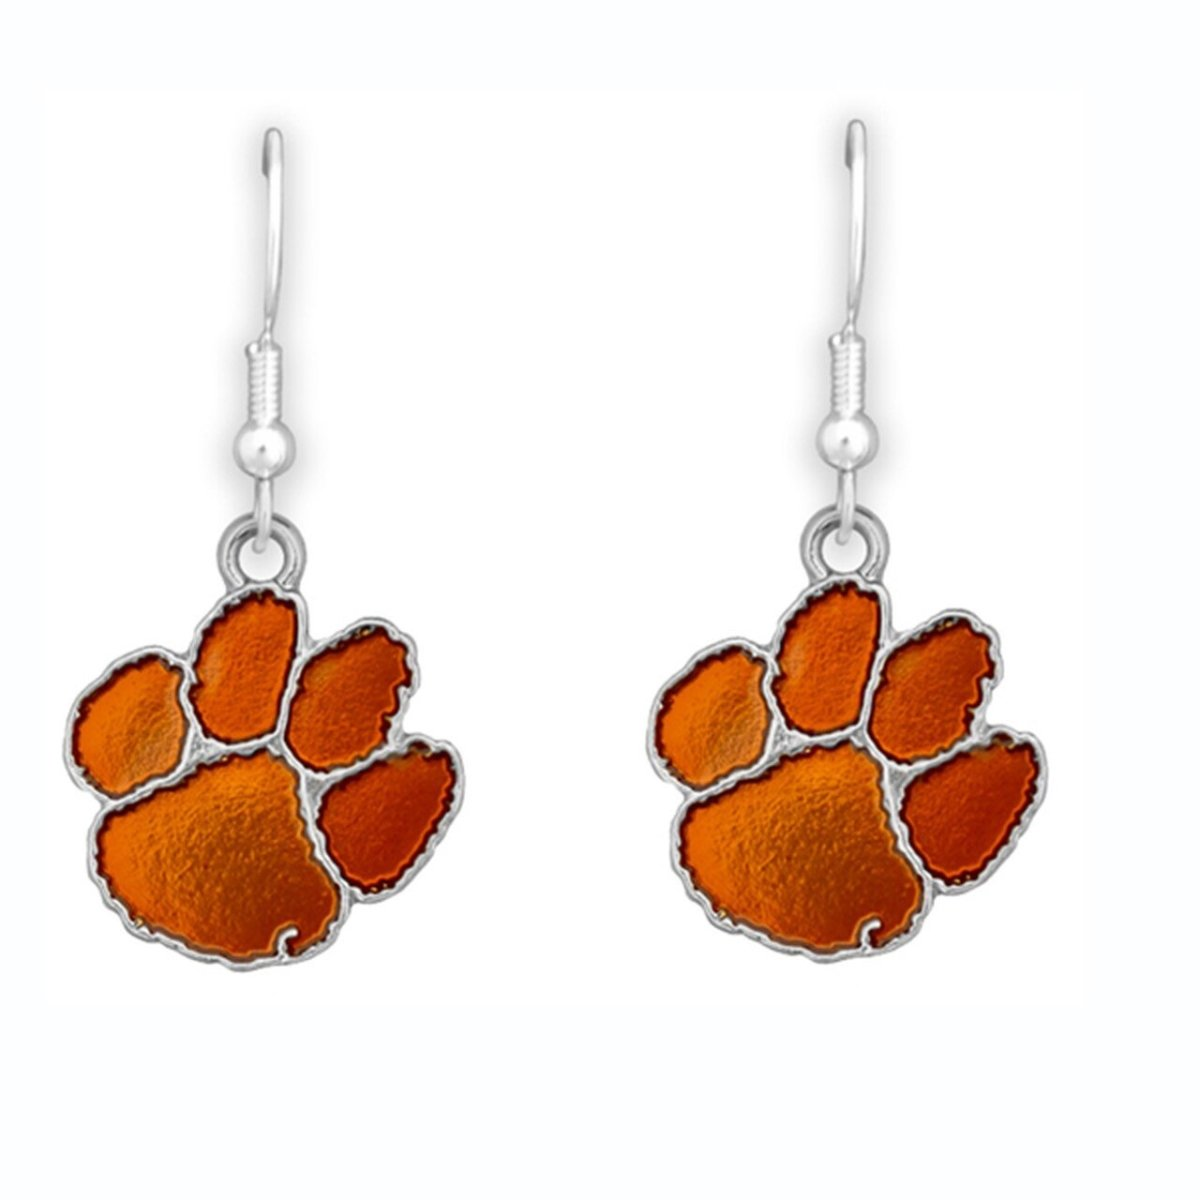 Hook Dangle Iridescent Earrings Orange Paw - Mr. Knickerbocker